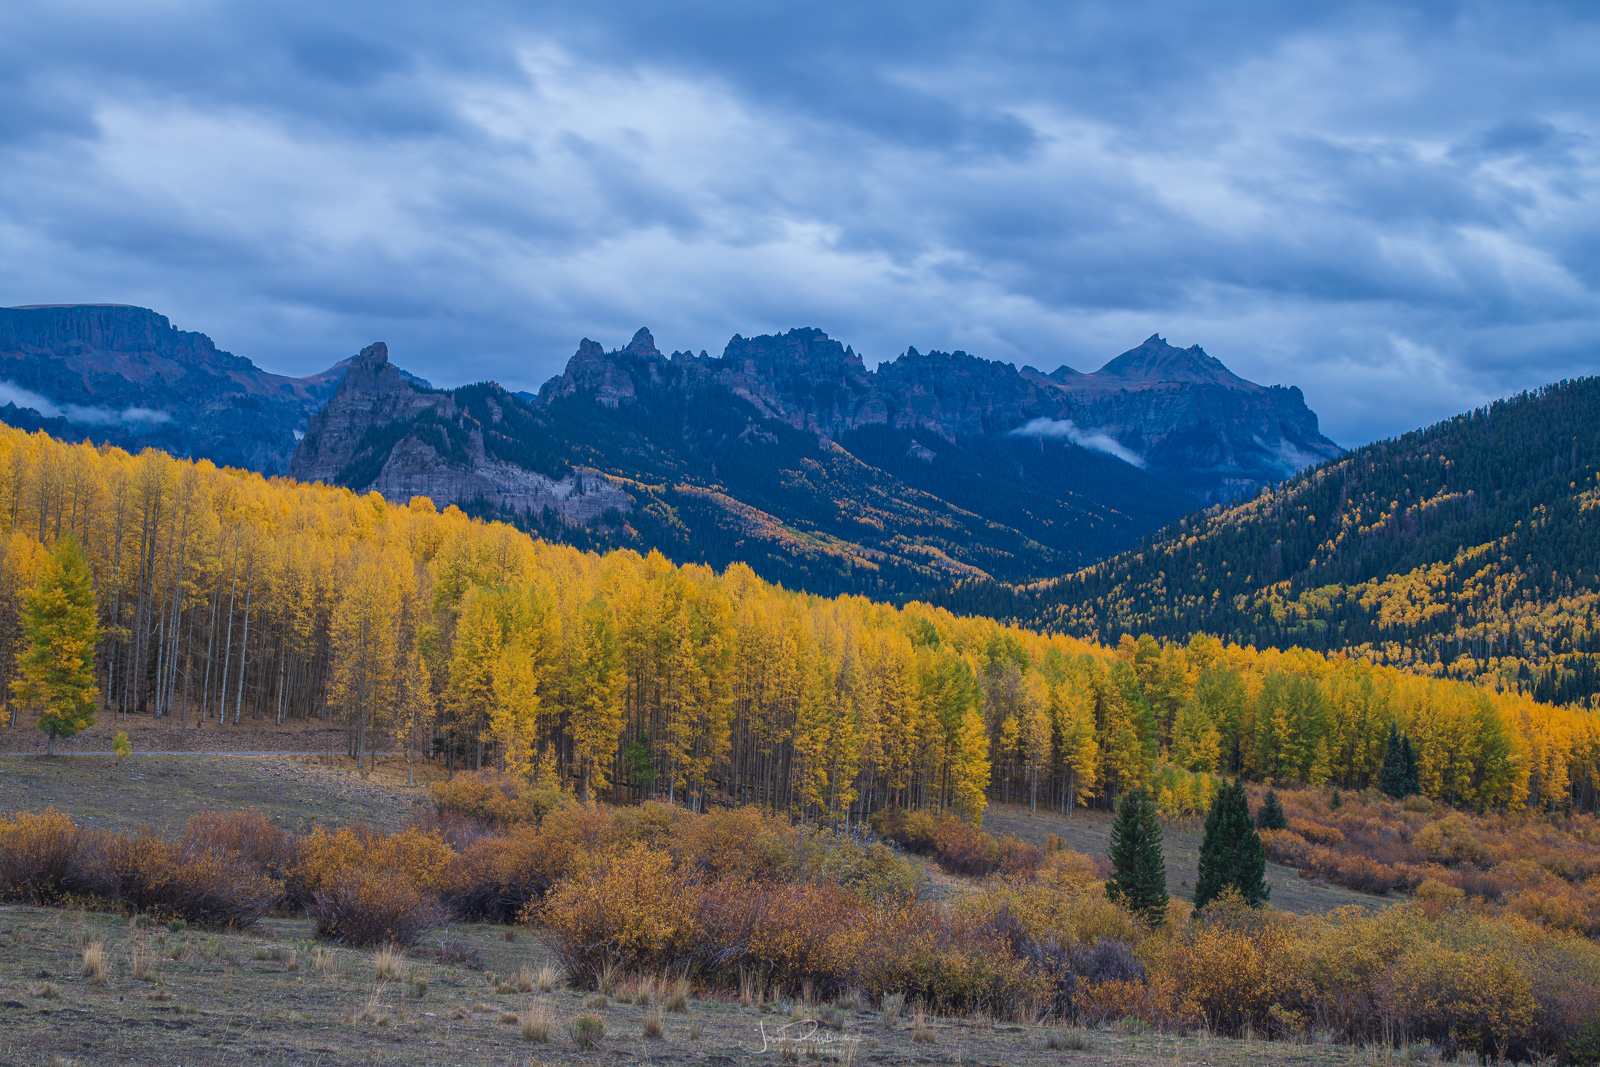 Rugged peaks of the Uncompahgre Mountains from Silver Jack.